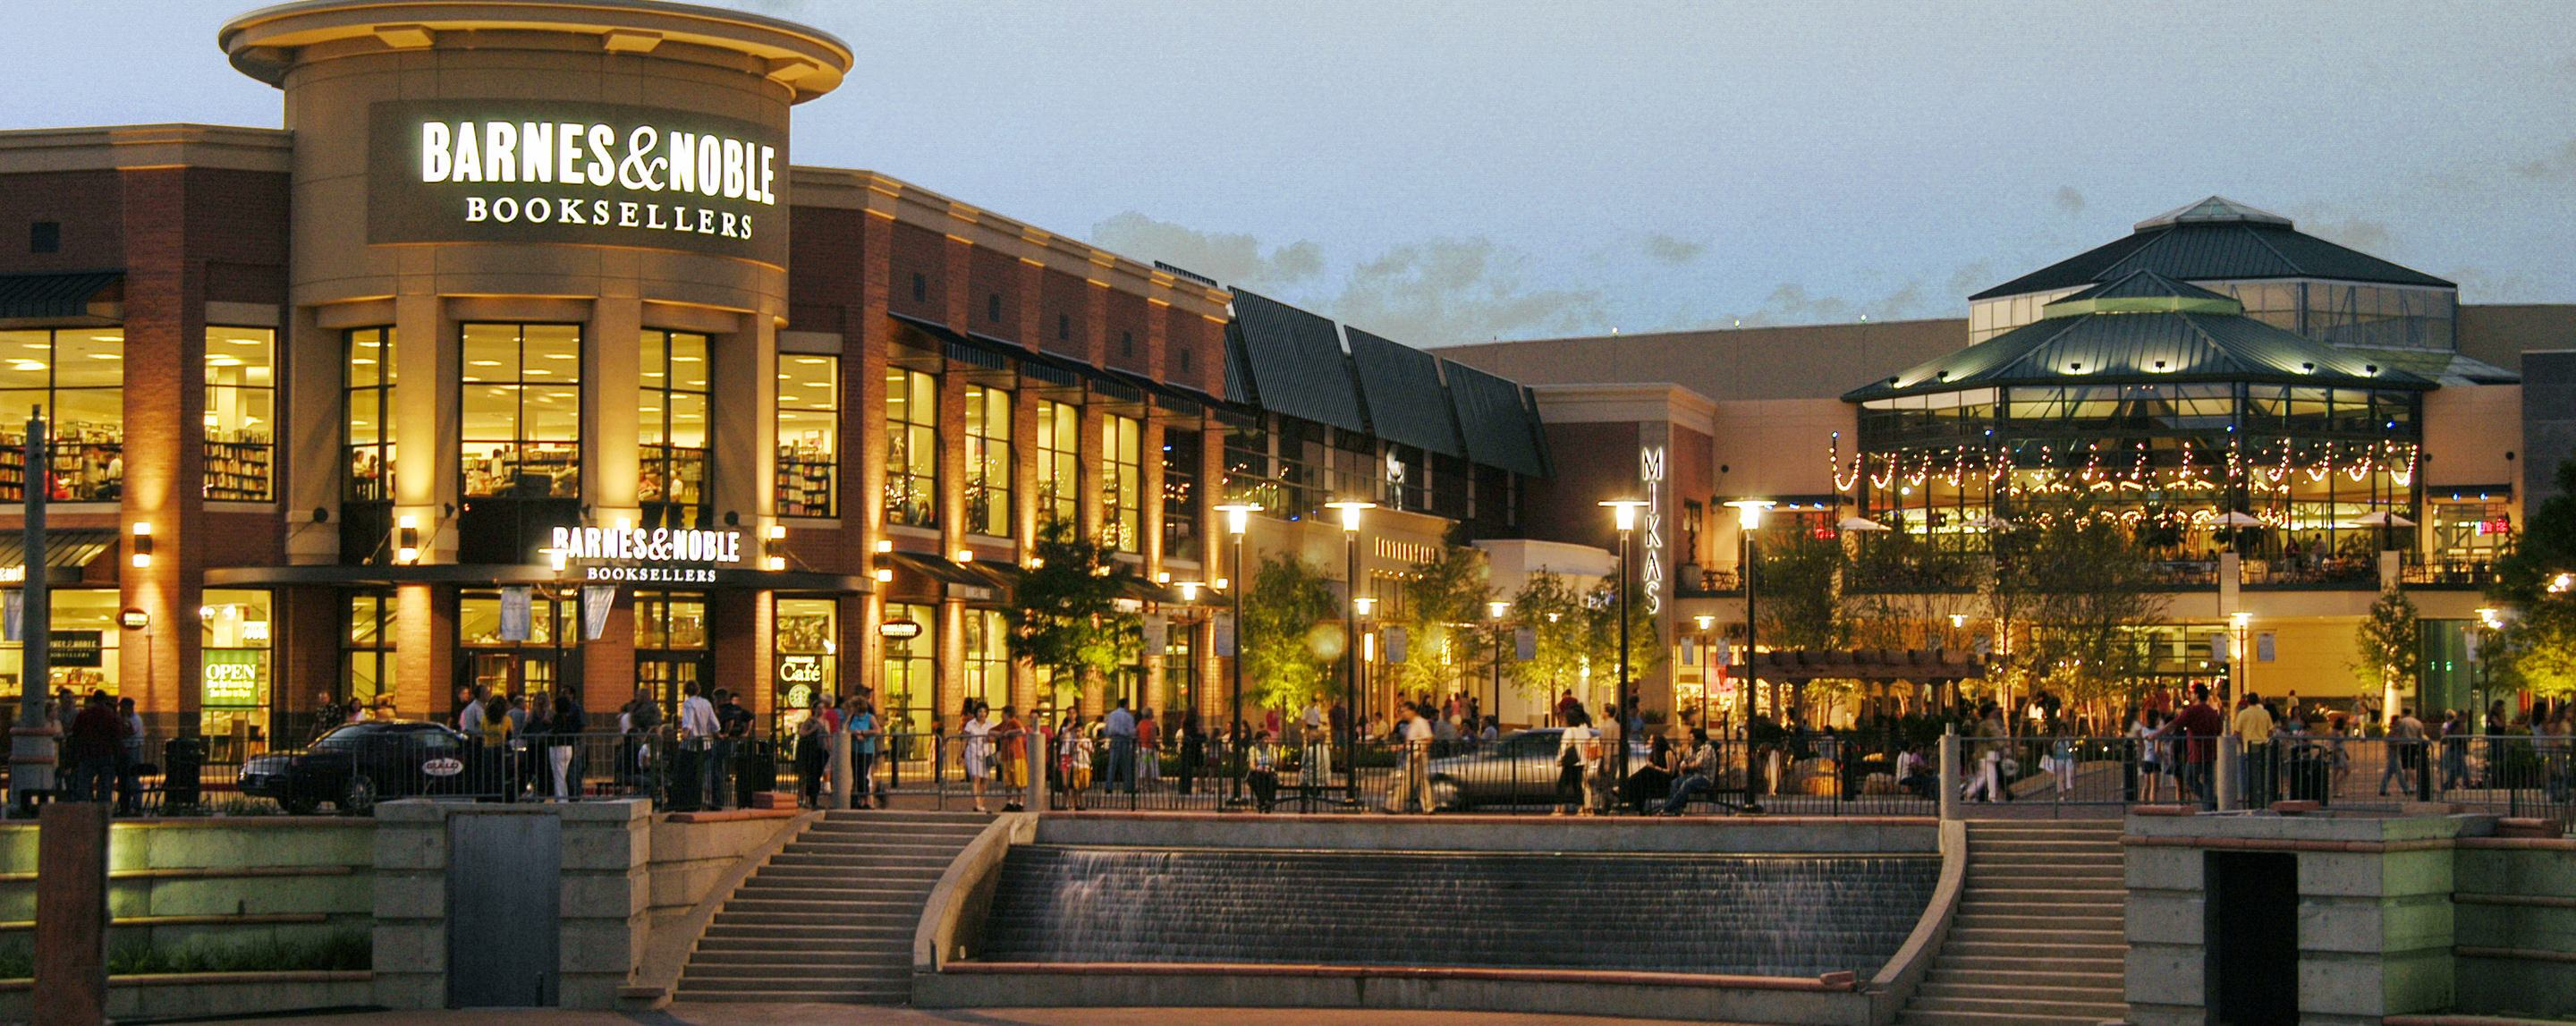 People walk around on the sidewalk near a Barnes and Noble store in a shopping center at dusk.